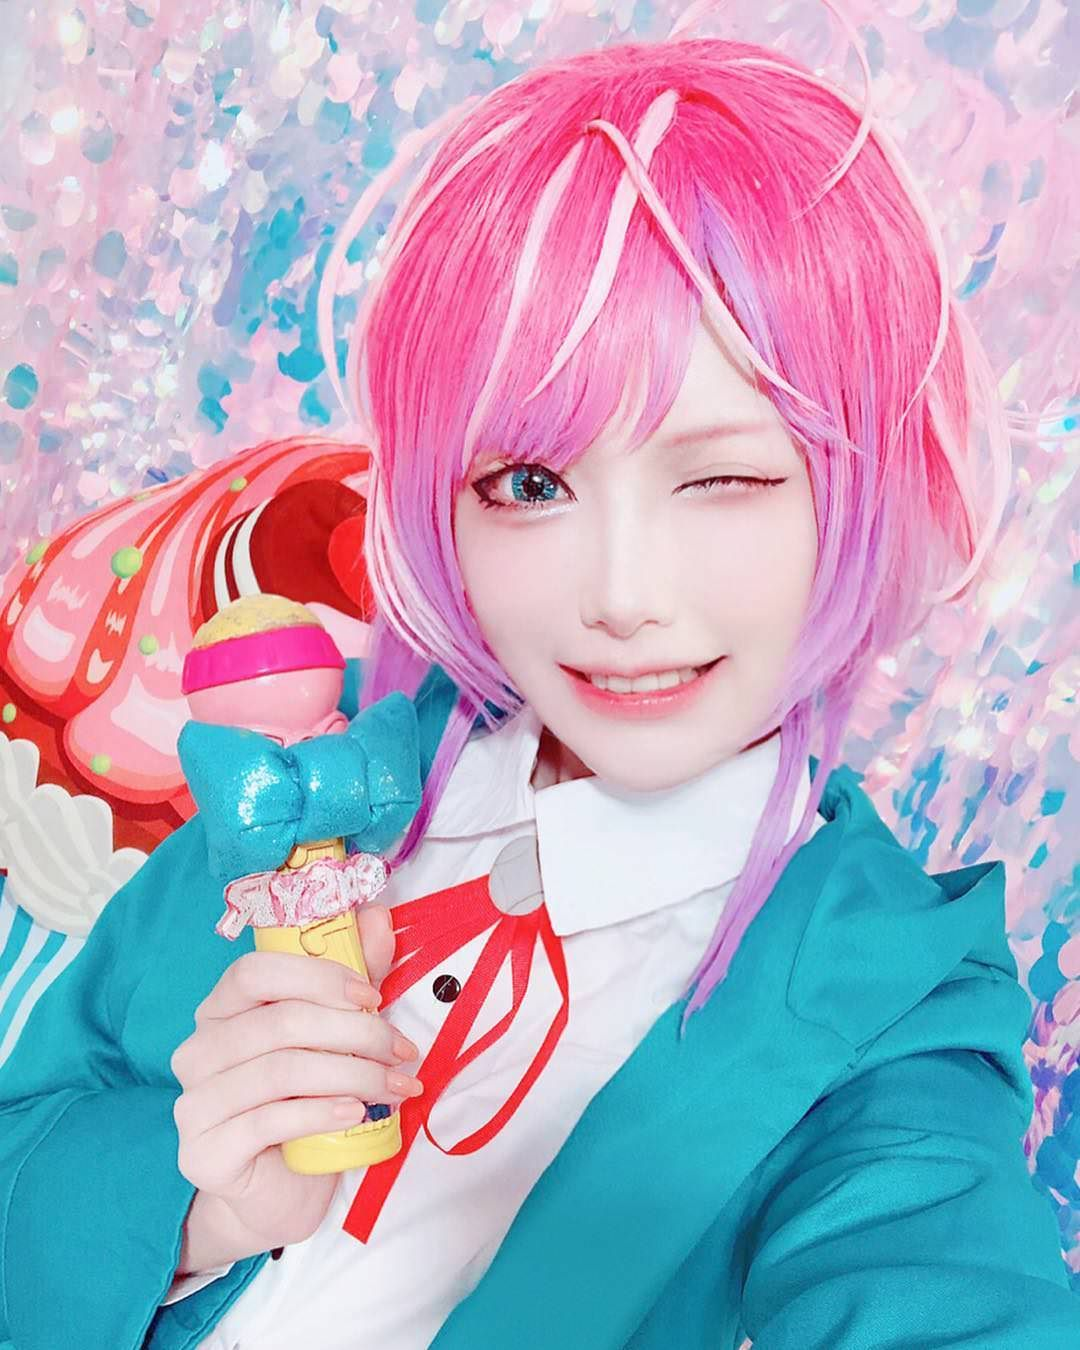 19++ Anime cosplay female characters ideas in 2021